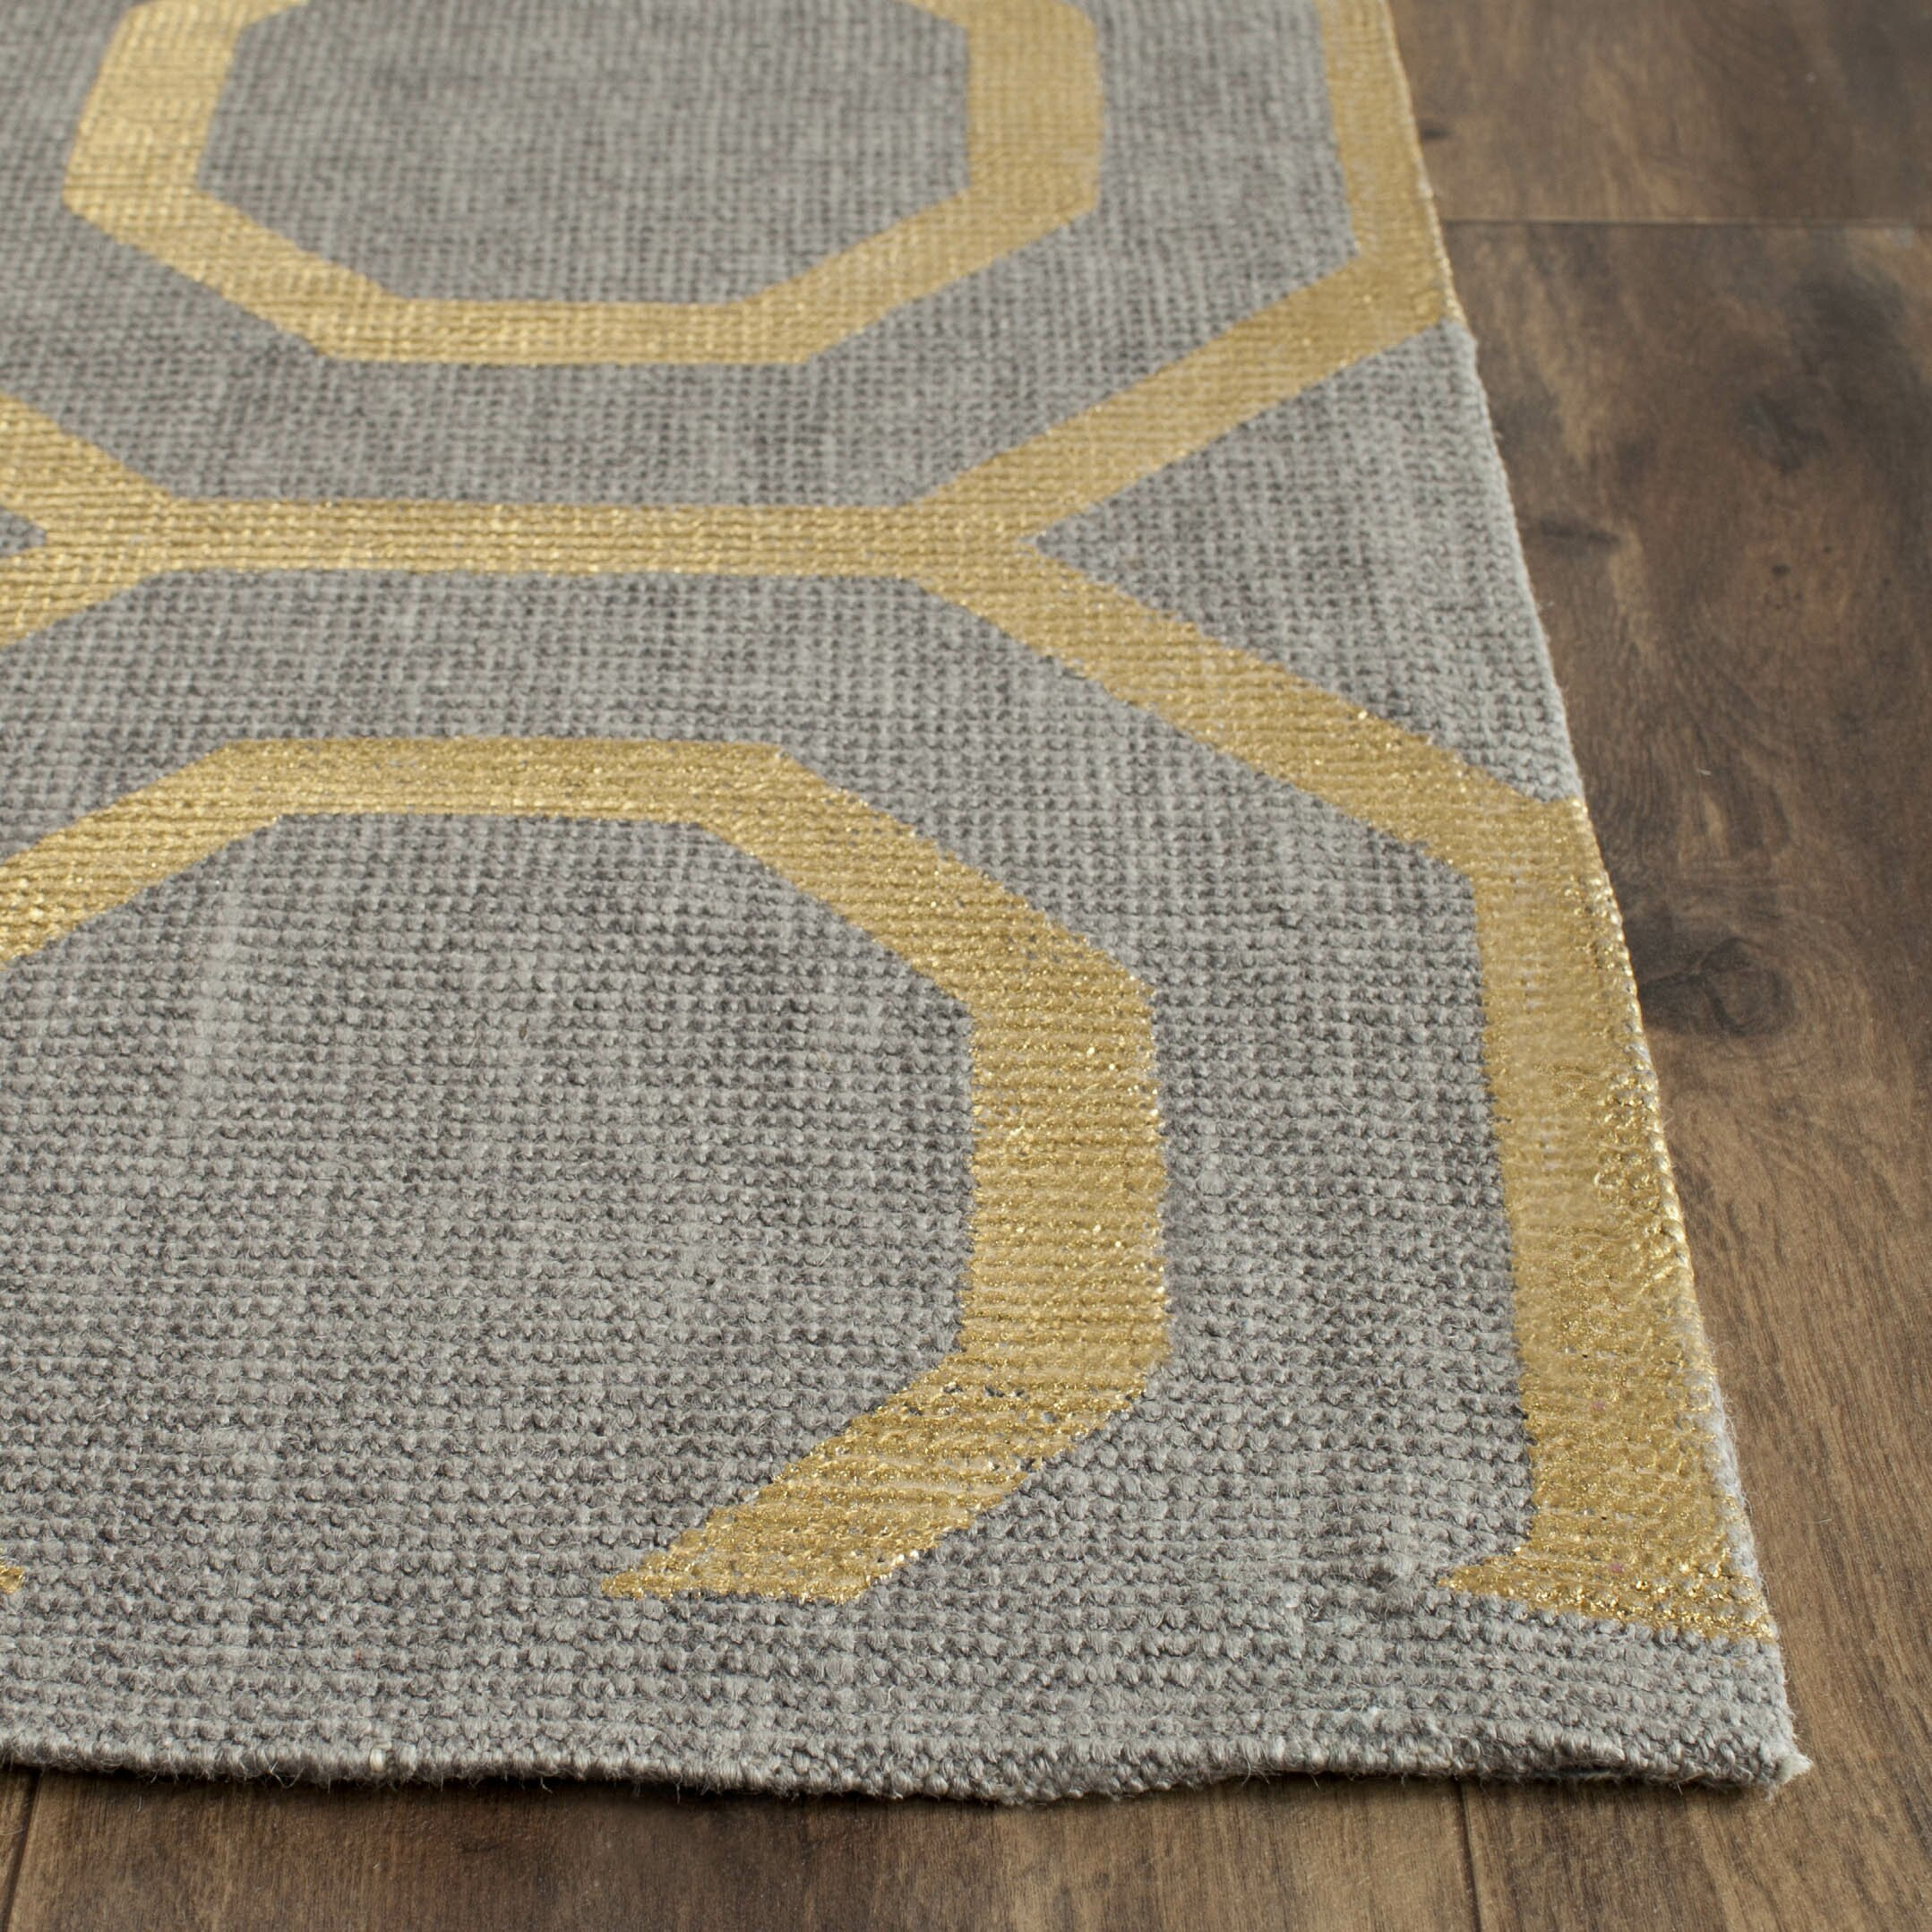 Gold And Grey Rug Designs